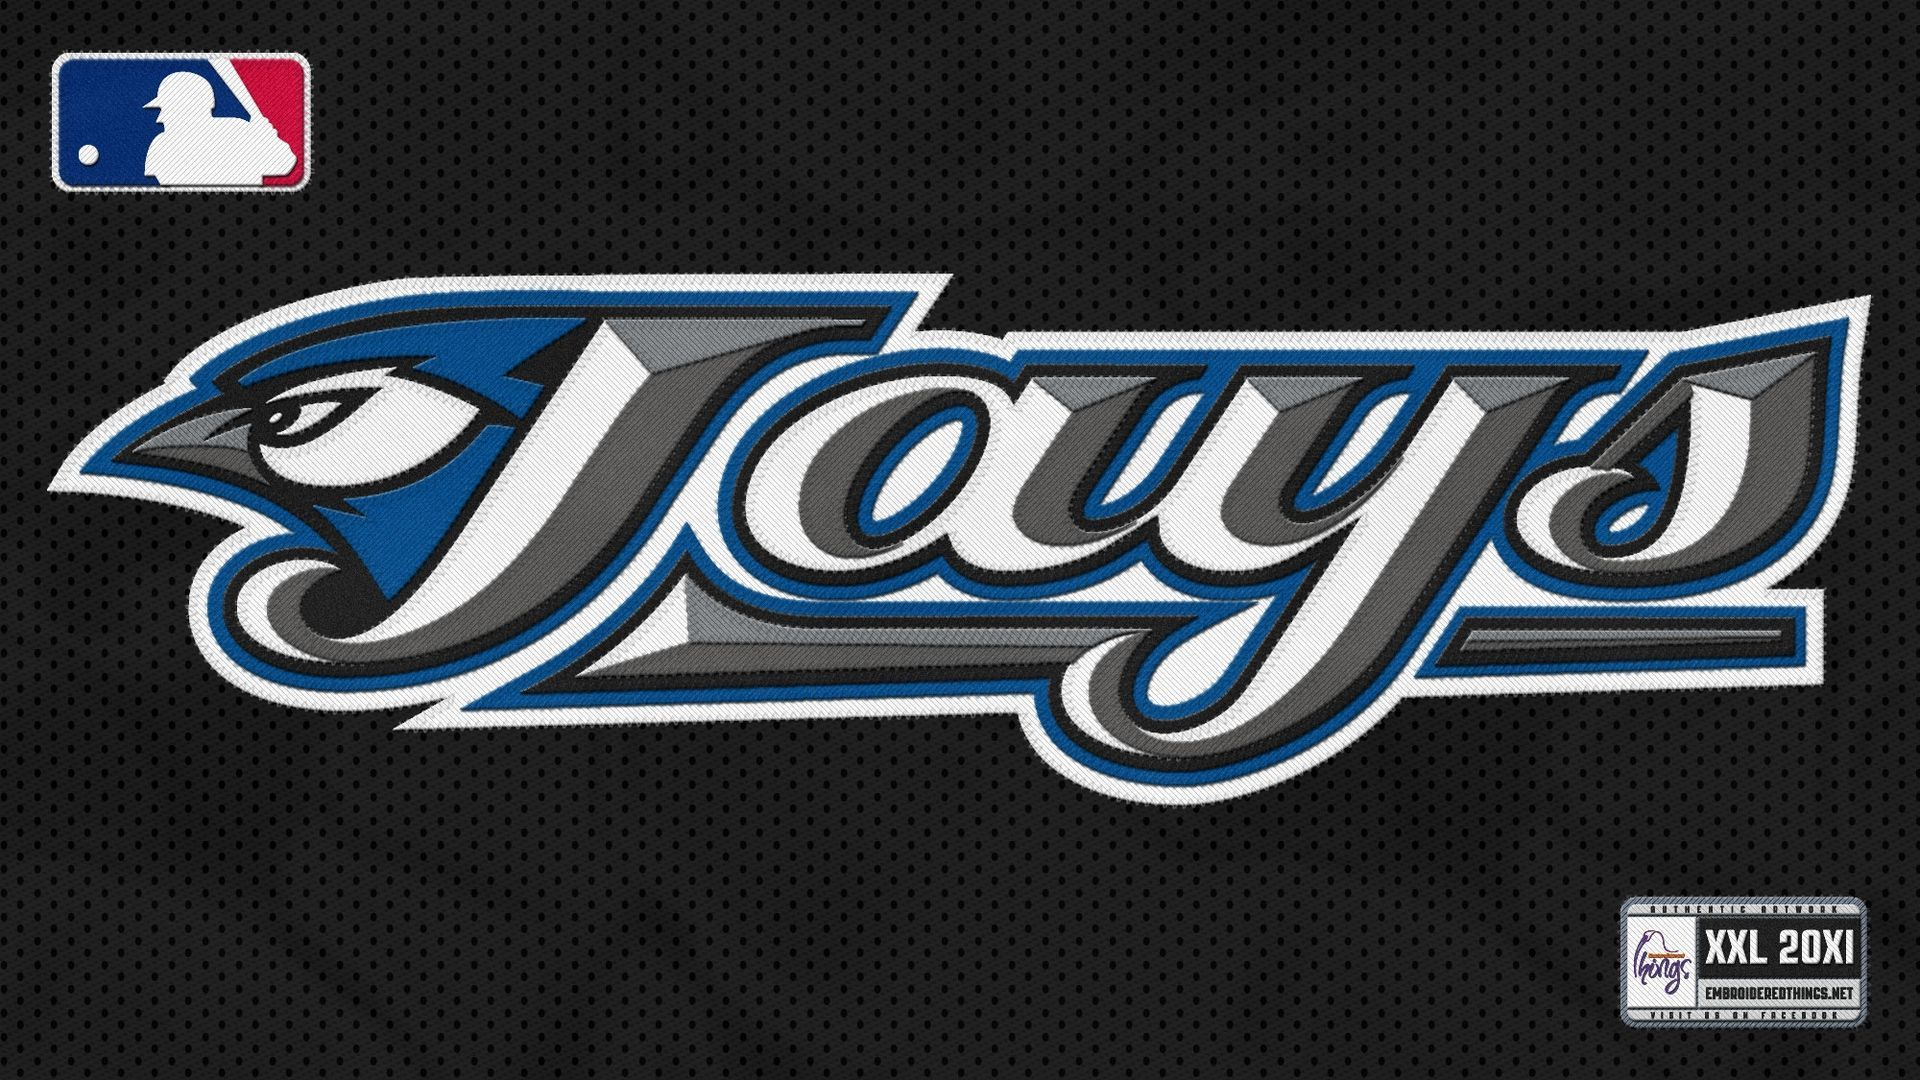 Toronto Blue Jays Wallpapers 2015 1920x1080